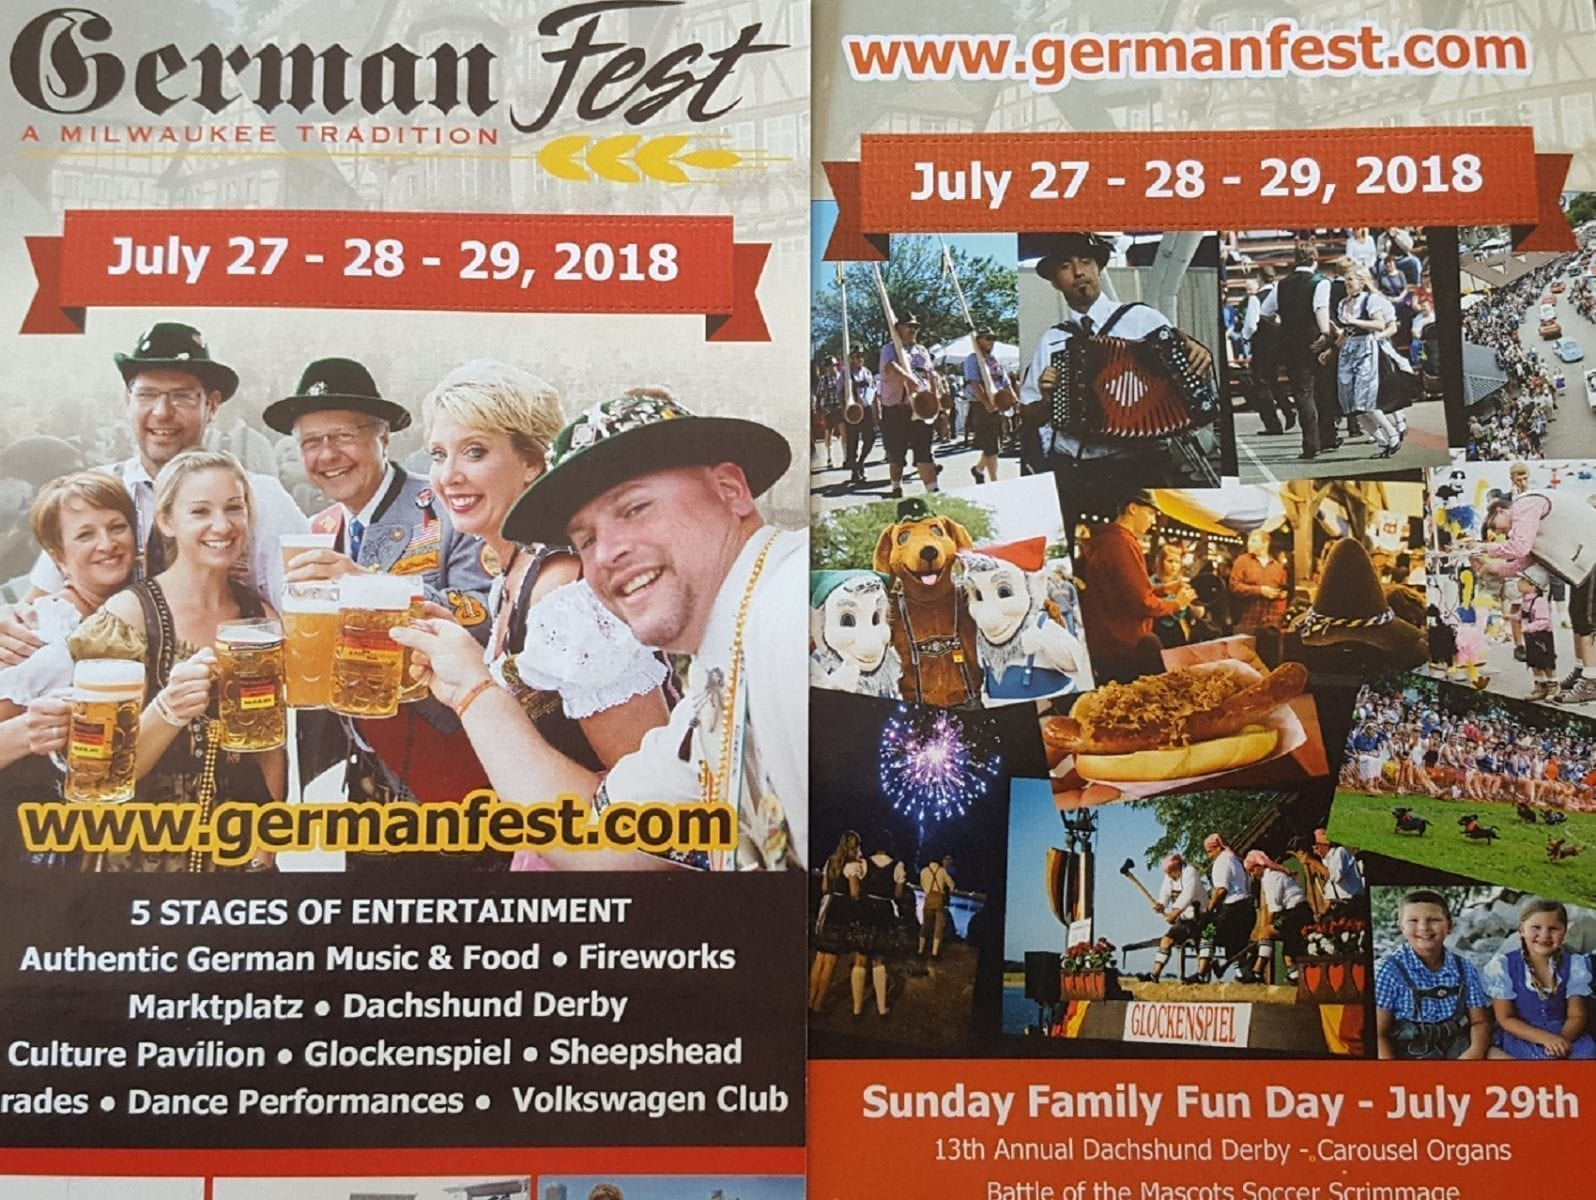 Made it Home From Germanfest Milwaukee 2018! Thank You & PHOTOS!